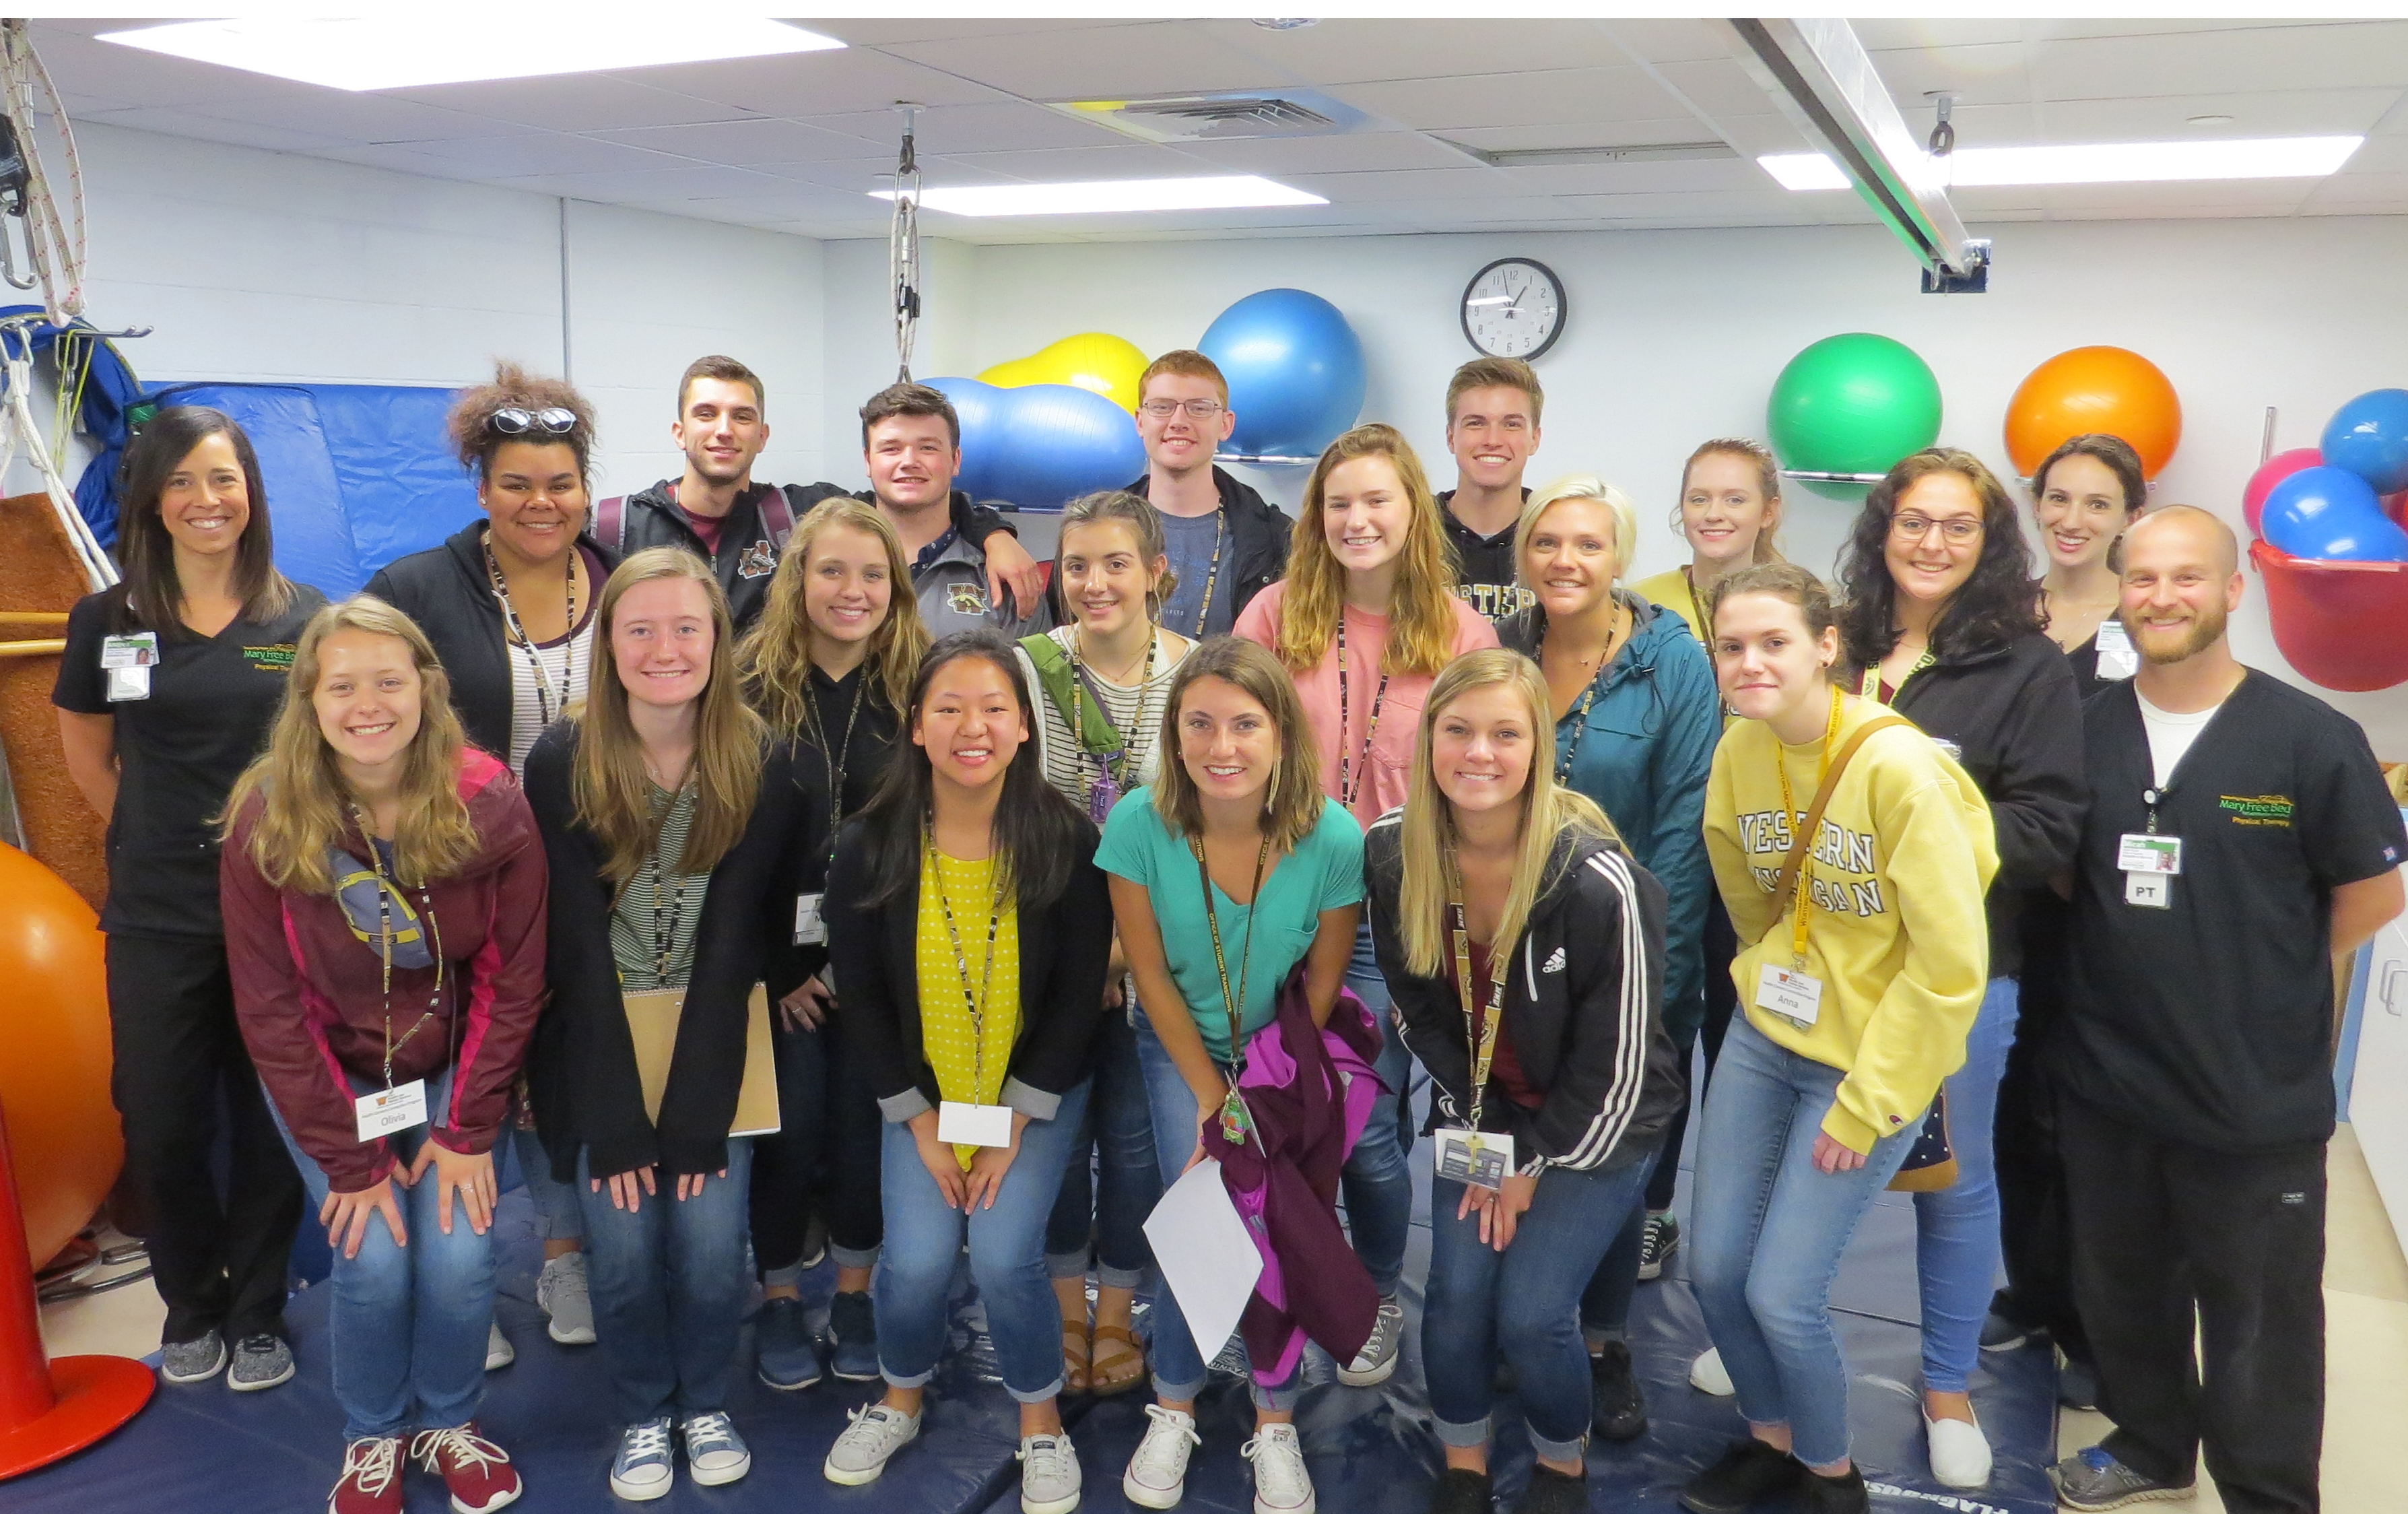 2018 Health Careers Connection Program at Western Michigan University